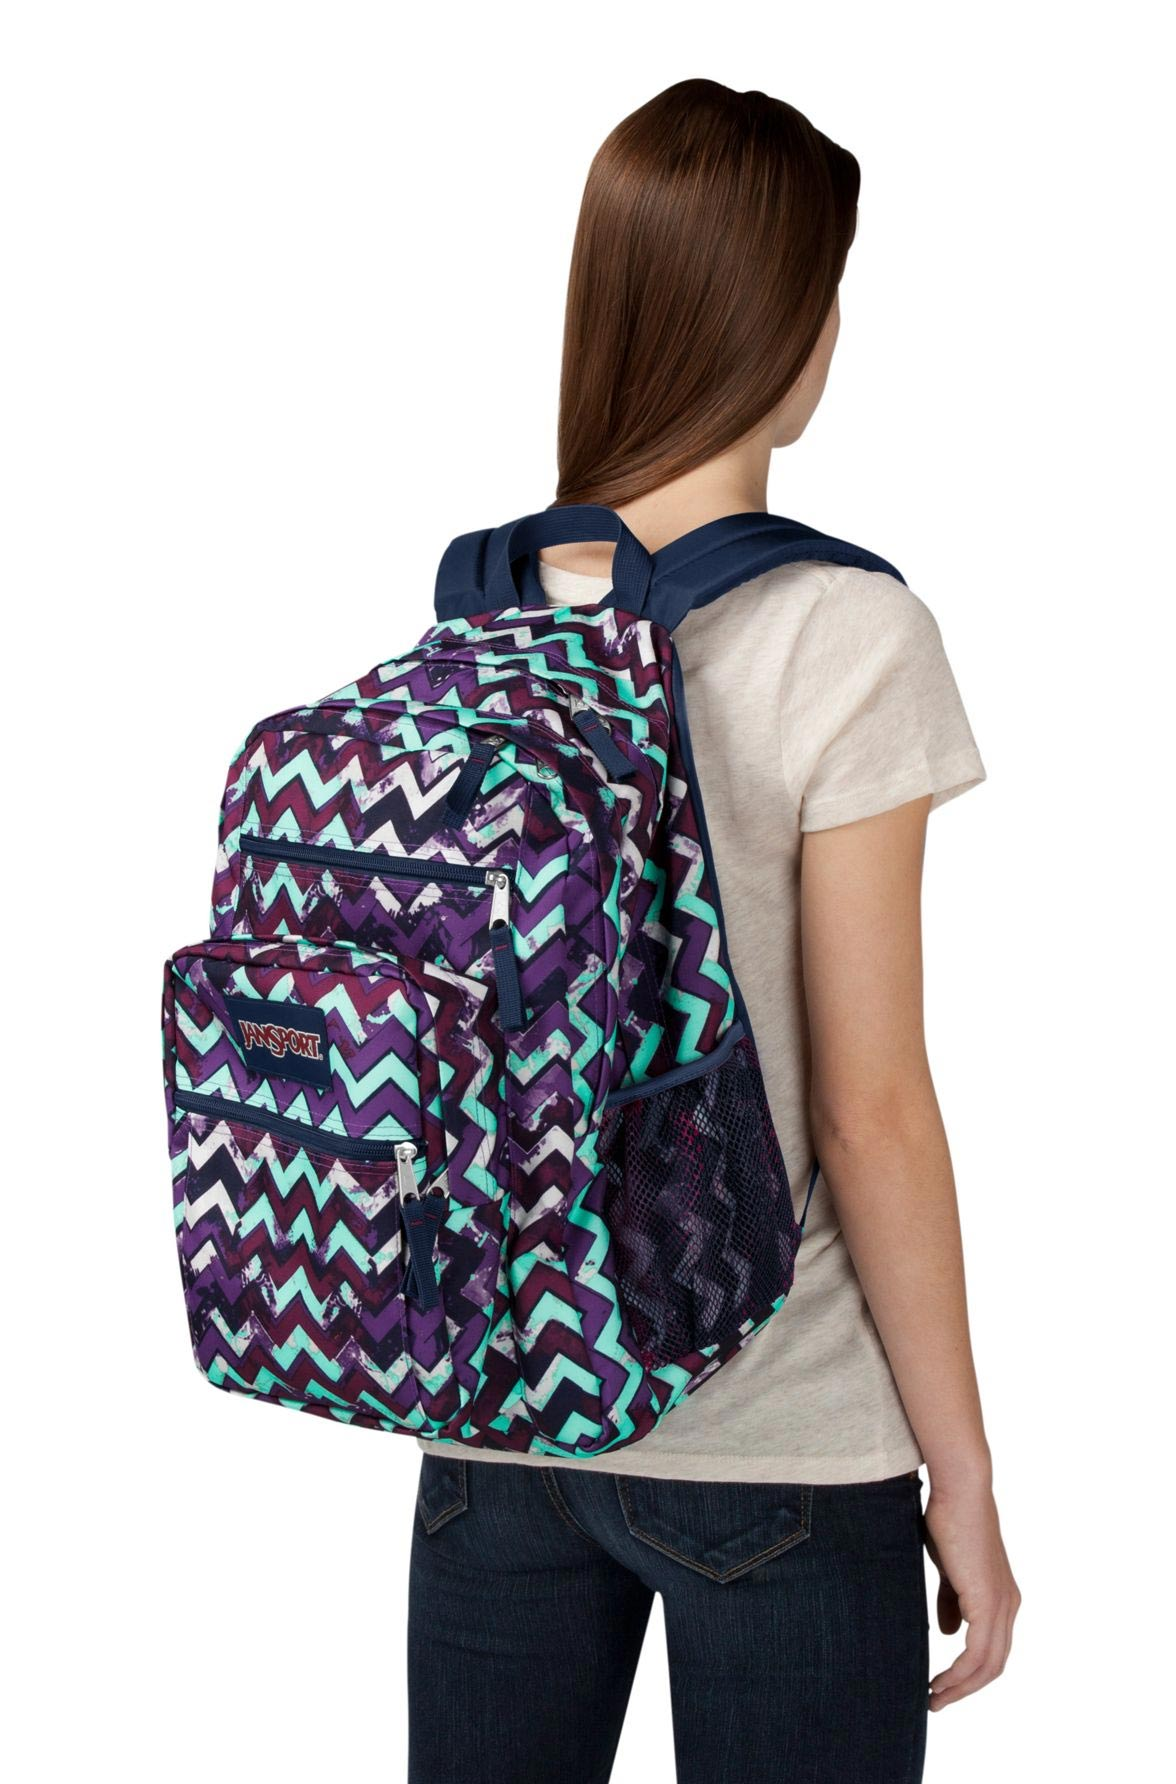 Jansport Big Student Backpack Clearance 00N6K2Eh